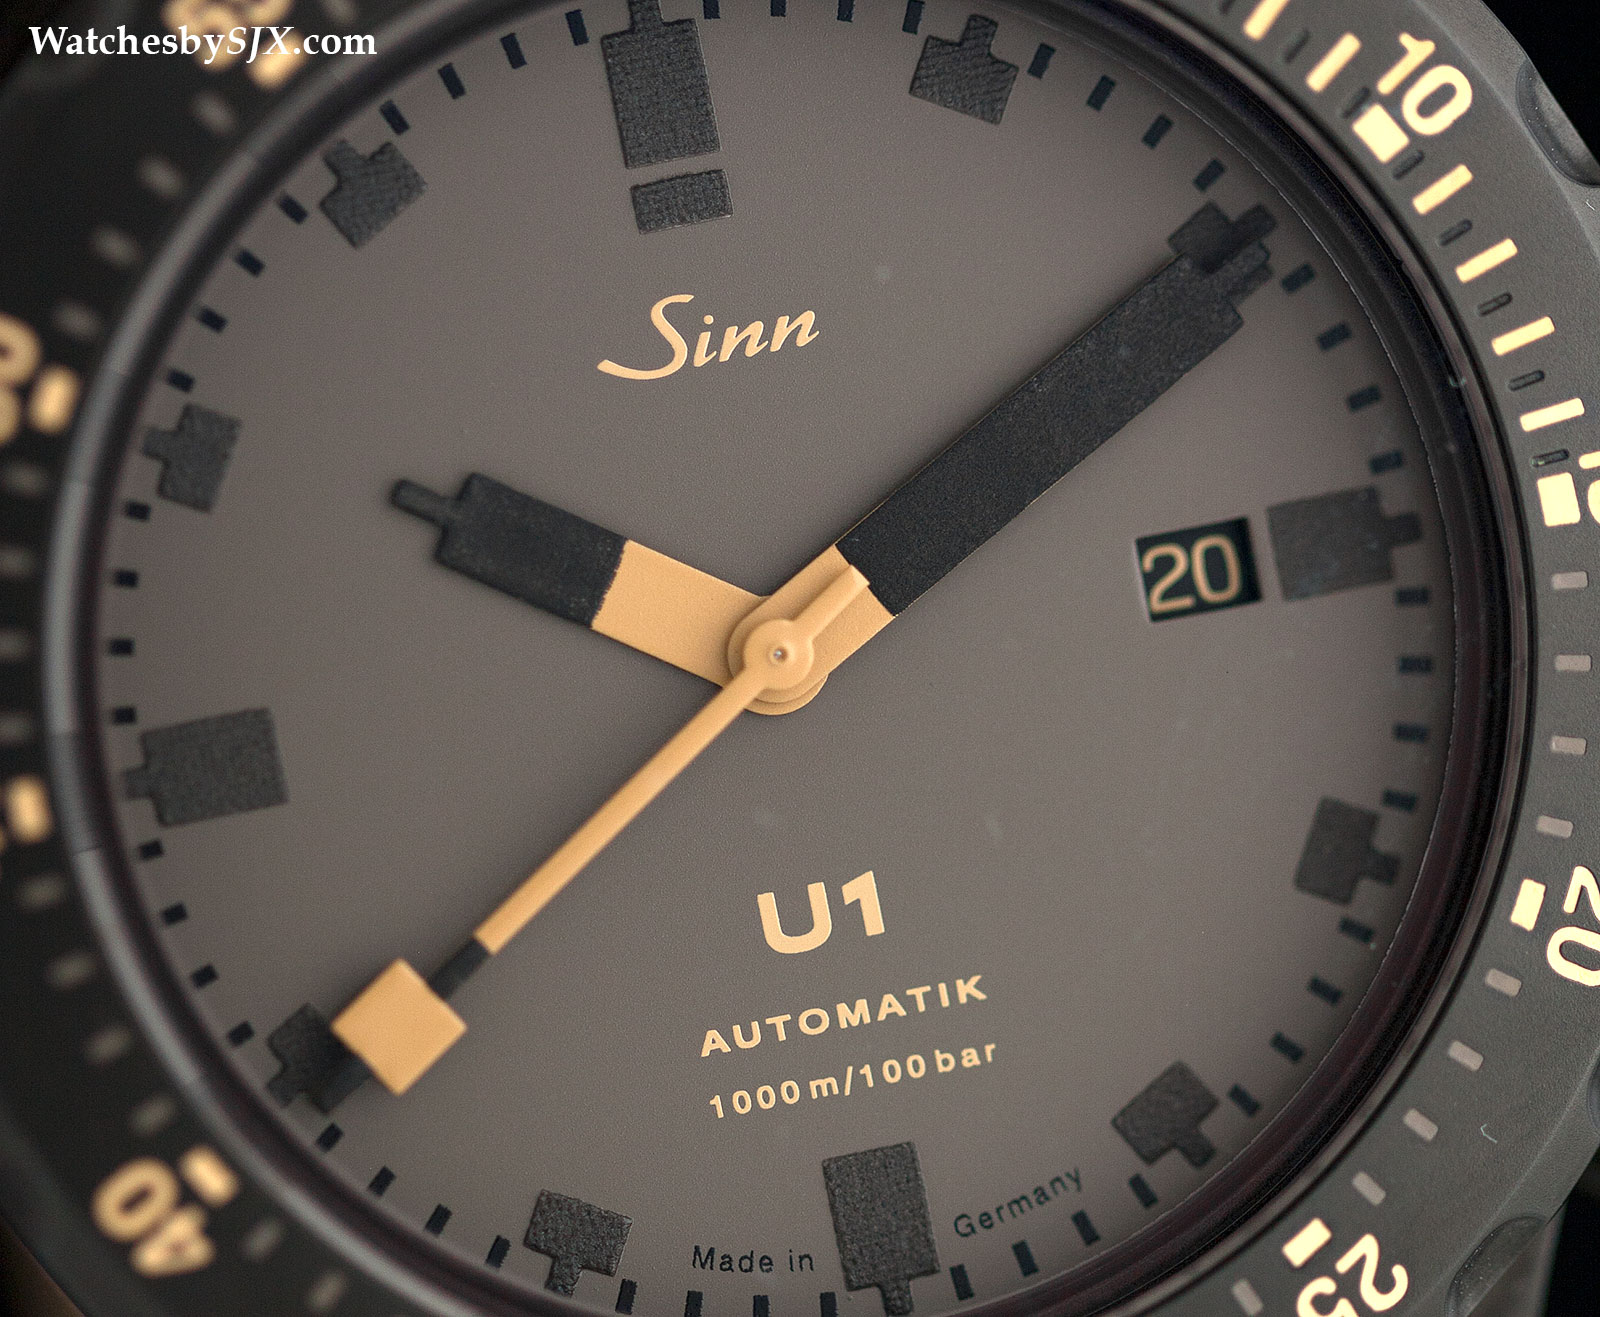 Sinn u1 d limited edition with photos specs and price watches by